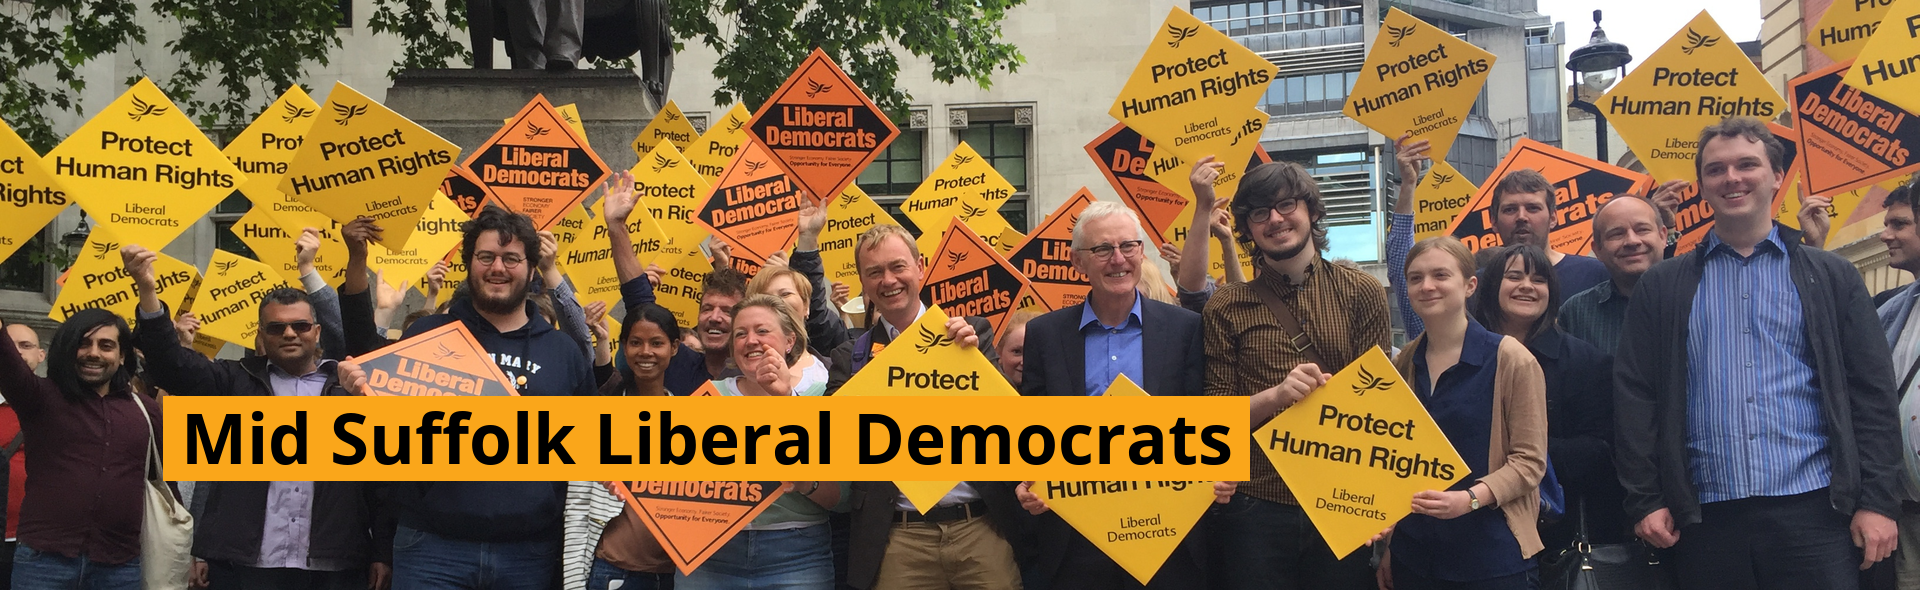 Mid Suffolk Liberal Democrats